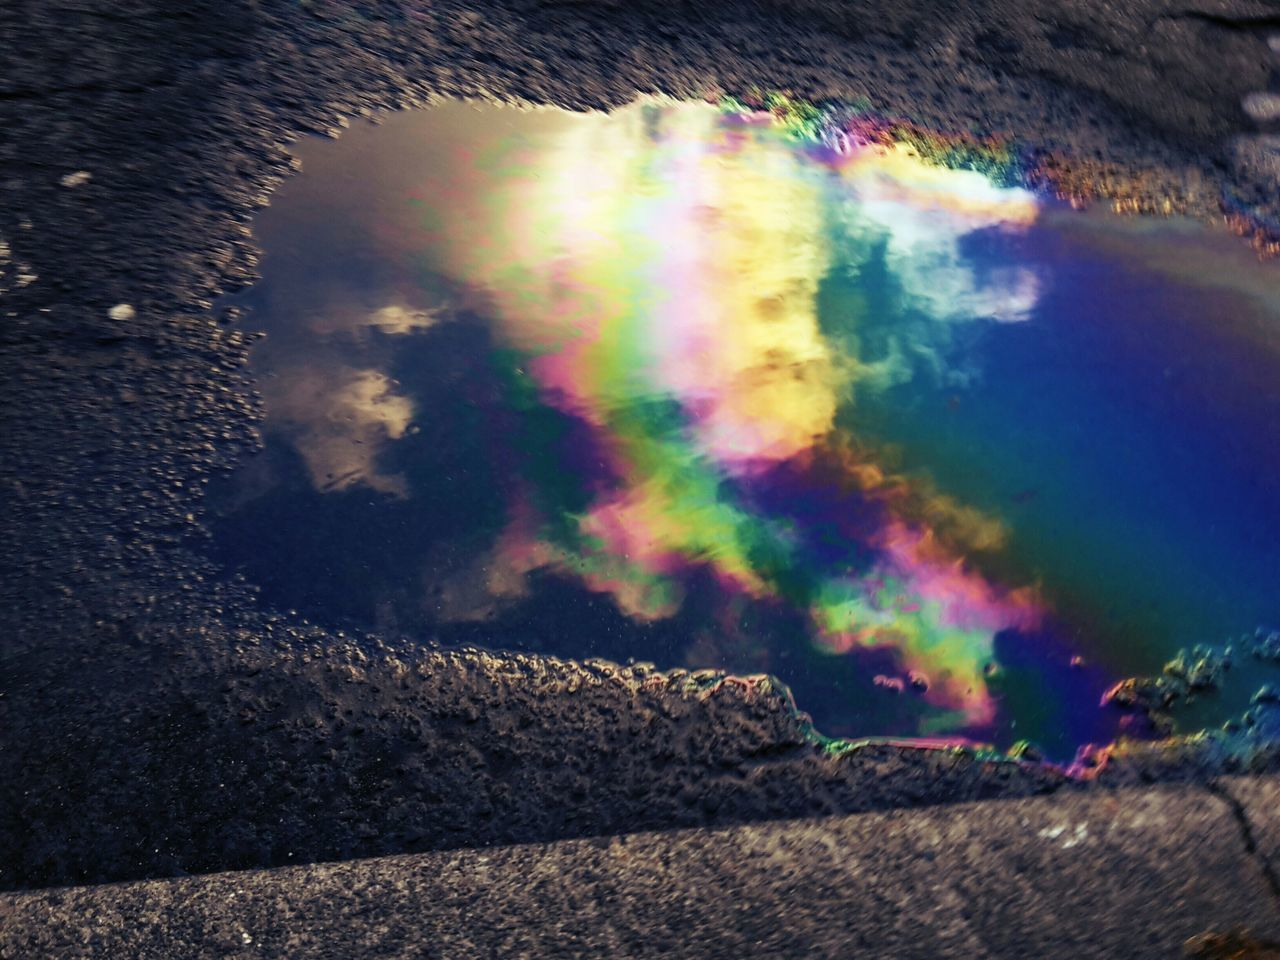 multi colored, rainbow, oil spill, outdoors, day, no people, nature, spectrum, close-up, sky